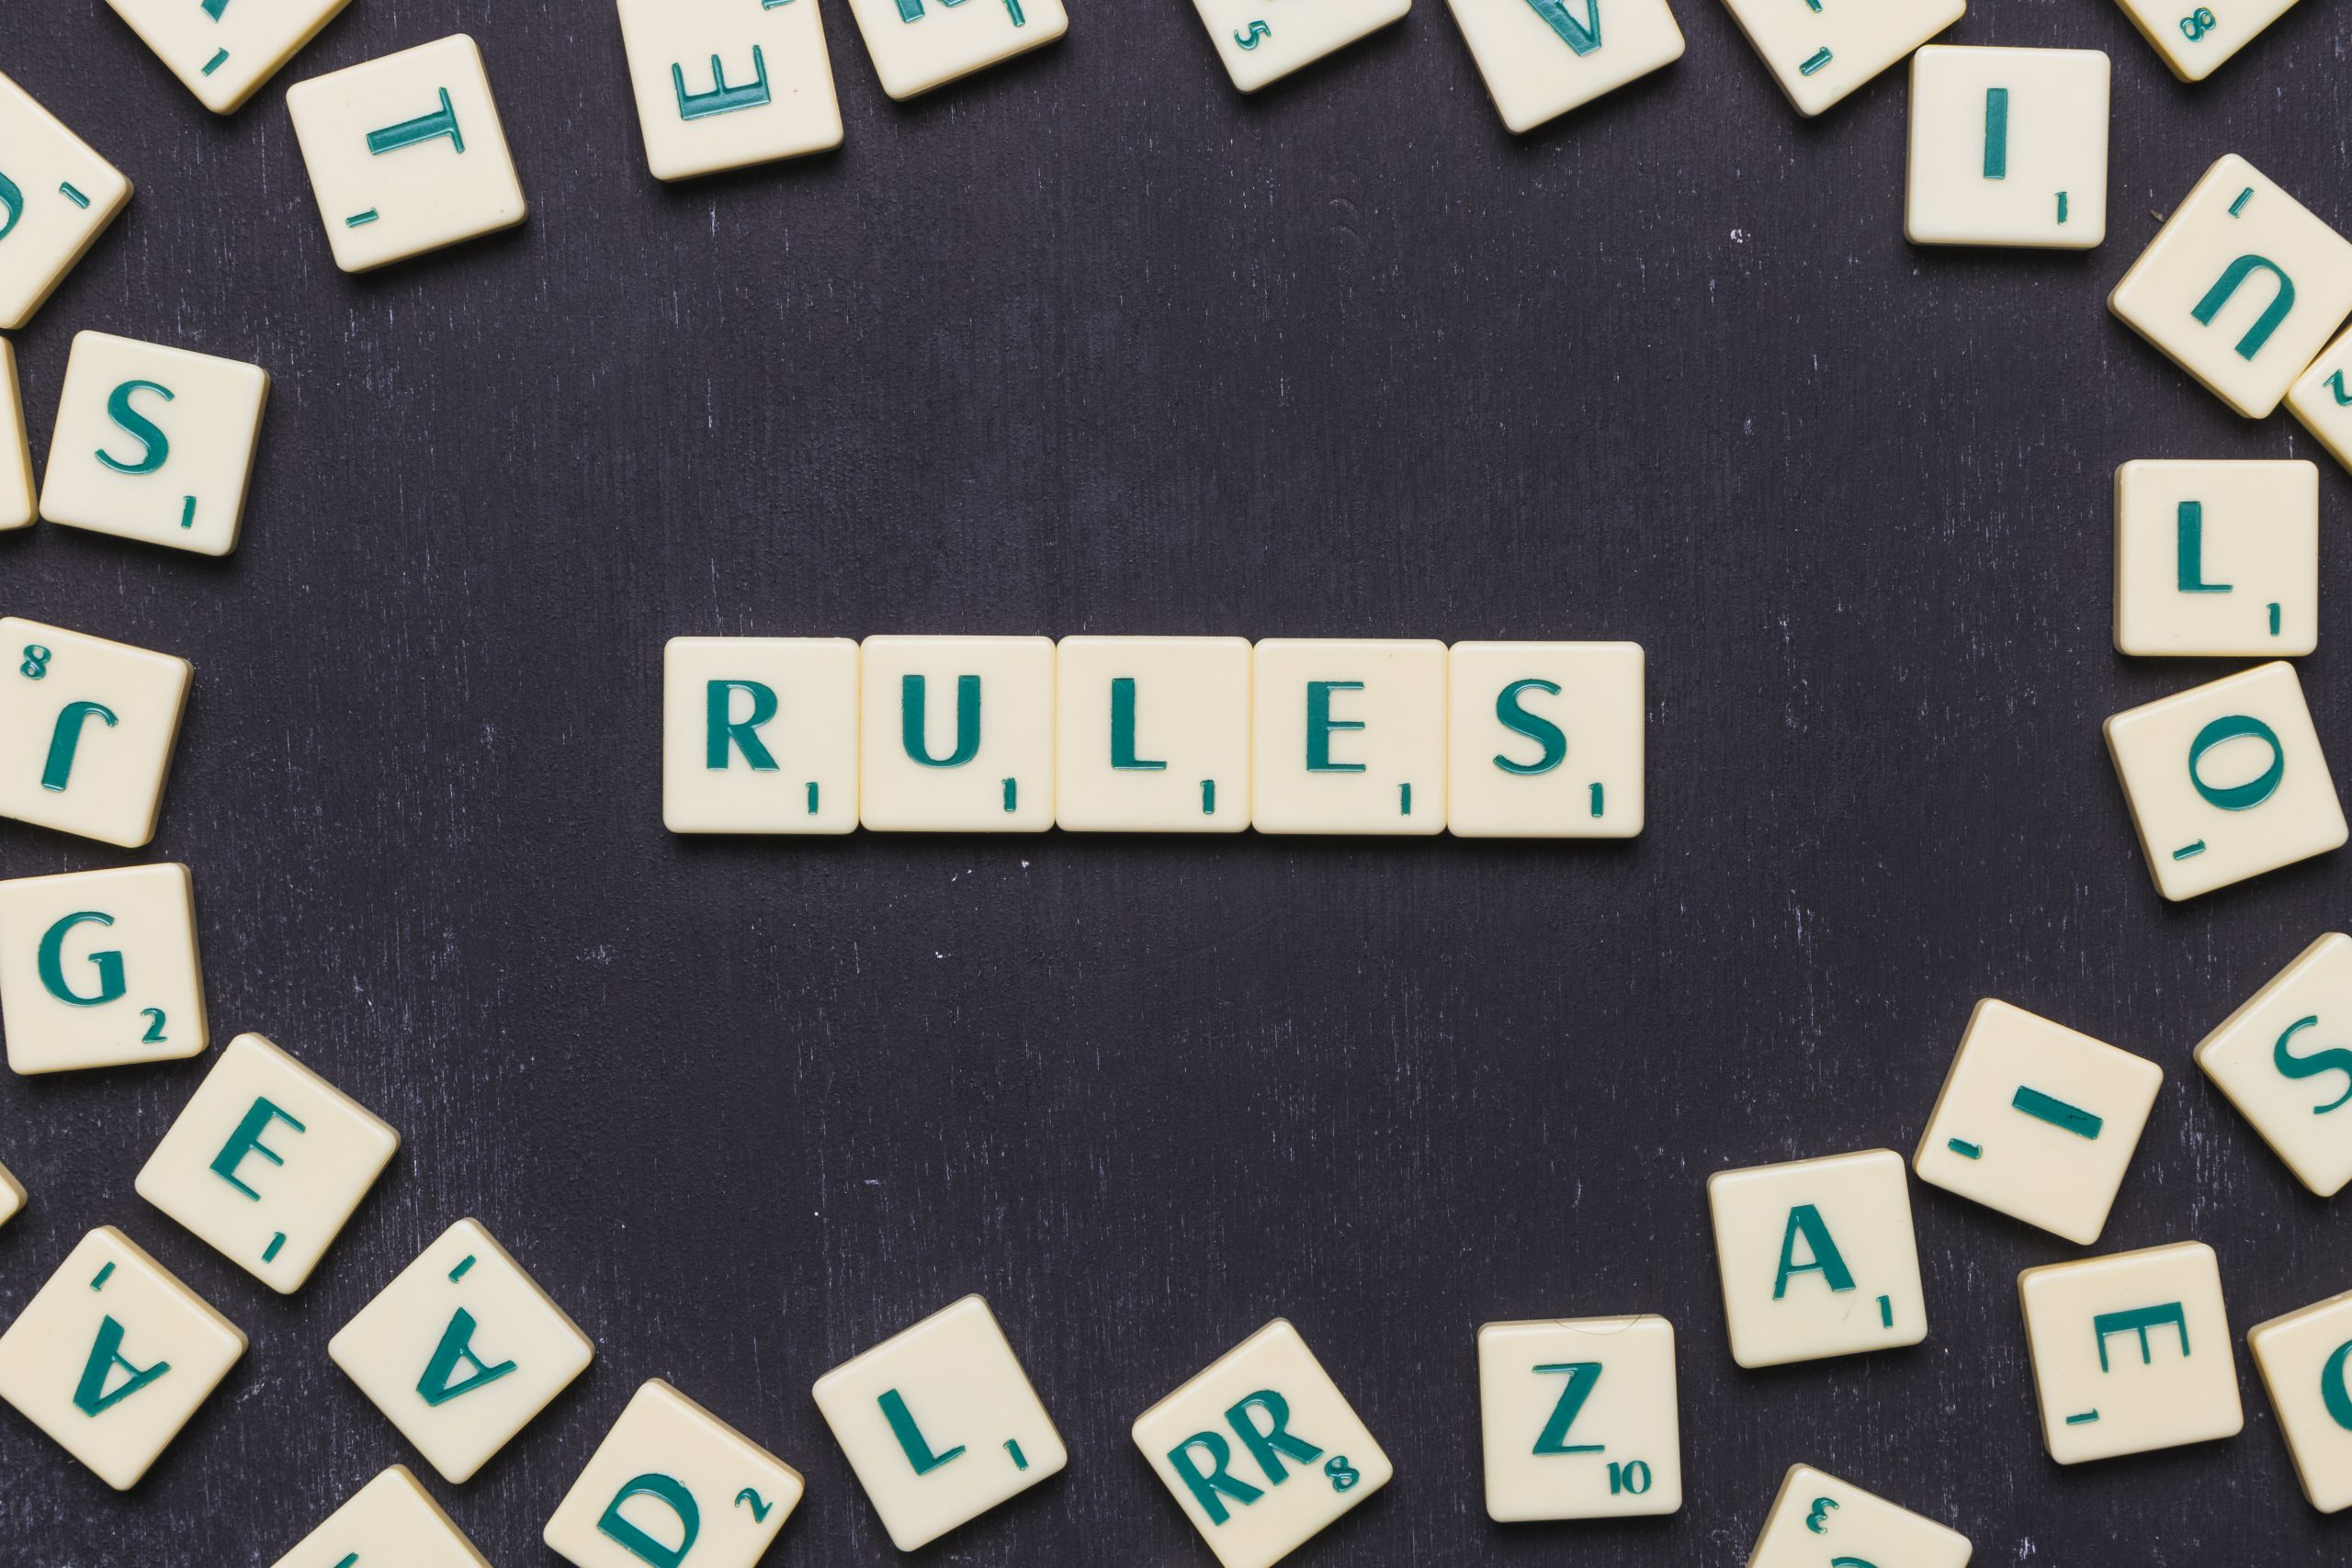 Rules-based approach